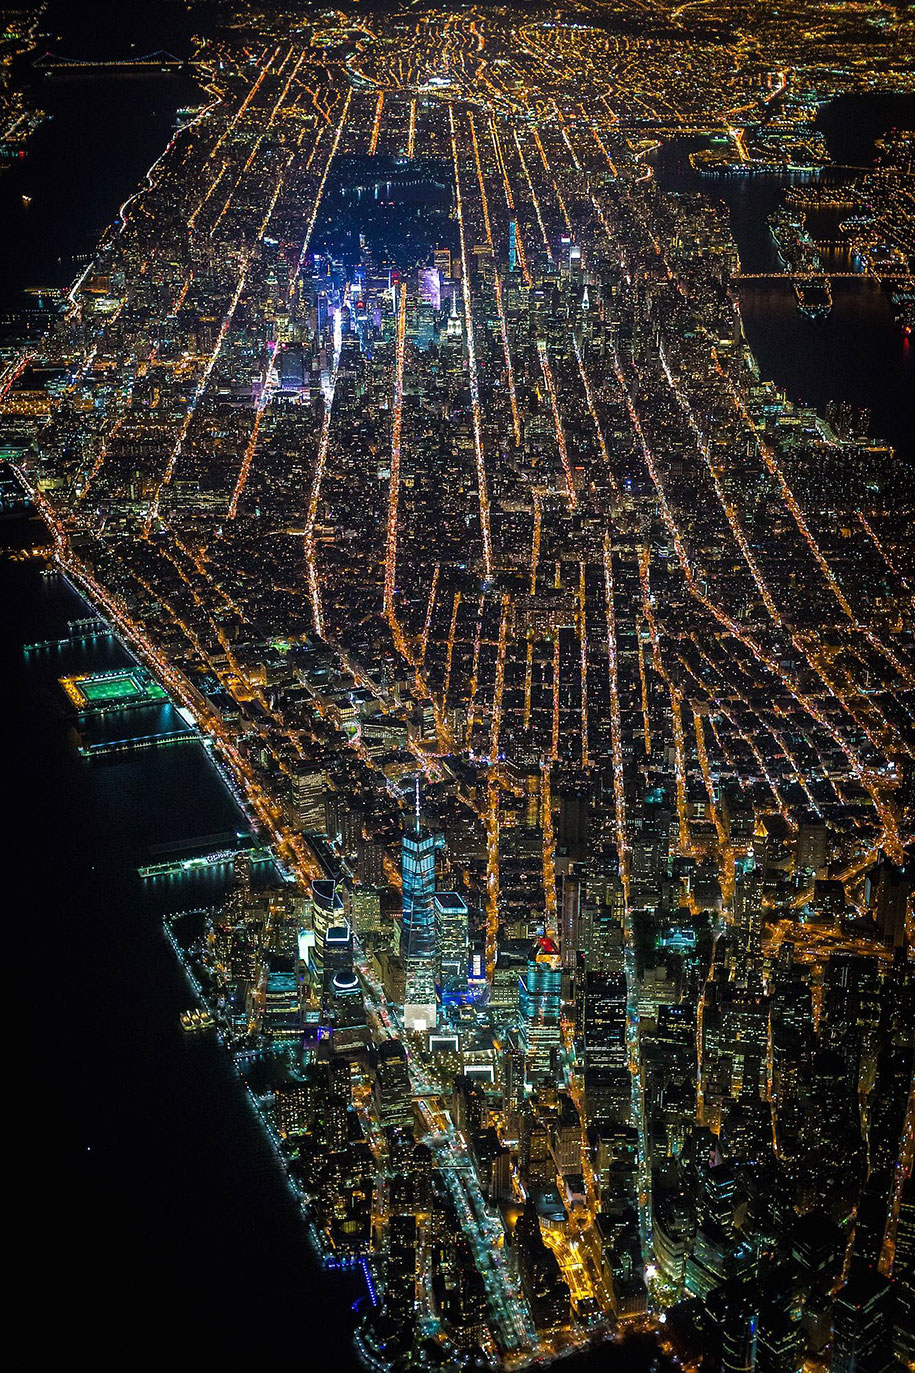 New York at Night looks like William Gibson's vision of cyberspace in Neuromancer